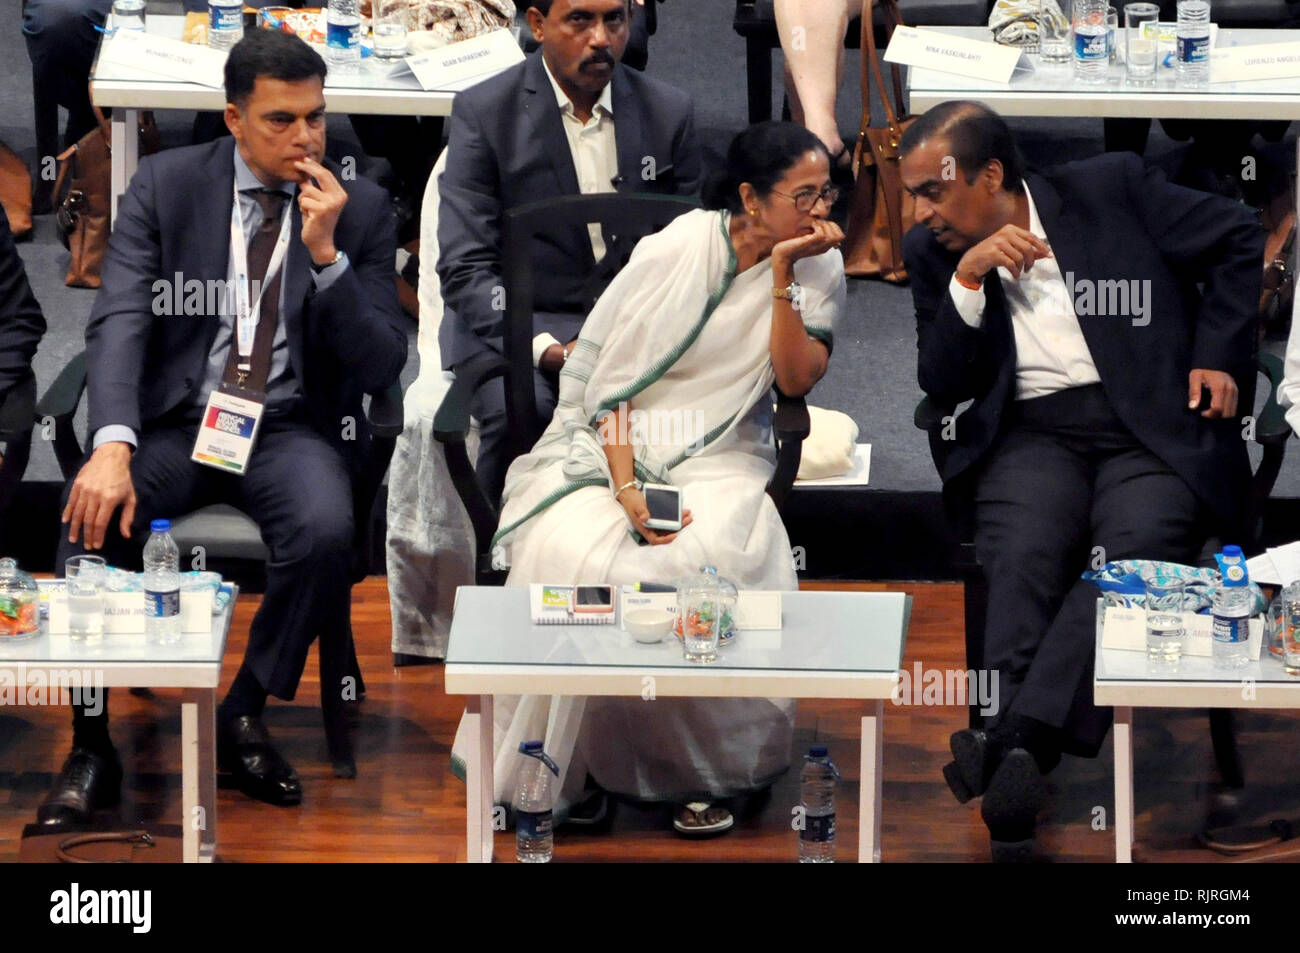 West Bengal Chief Minster Mamata Banerjee (middle) along with JSW Group Managing Director Sajjan Jindal (left) and Reliance Industries Chairman Mukesh Ambani (right) during theinauguration of Bengal Global Business Summit 2019. (Photo by Saikat Paul/Pacific Press) - Stock Image